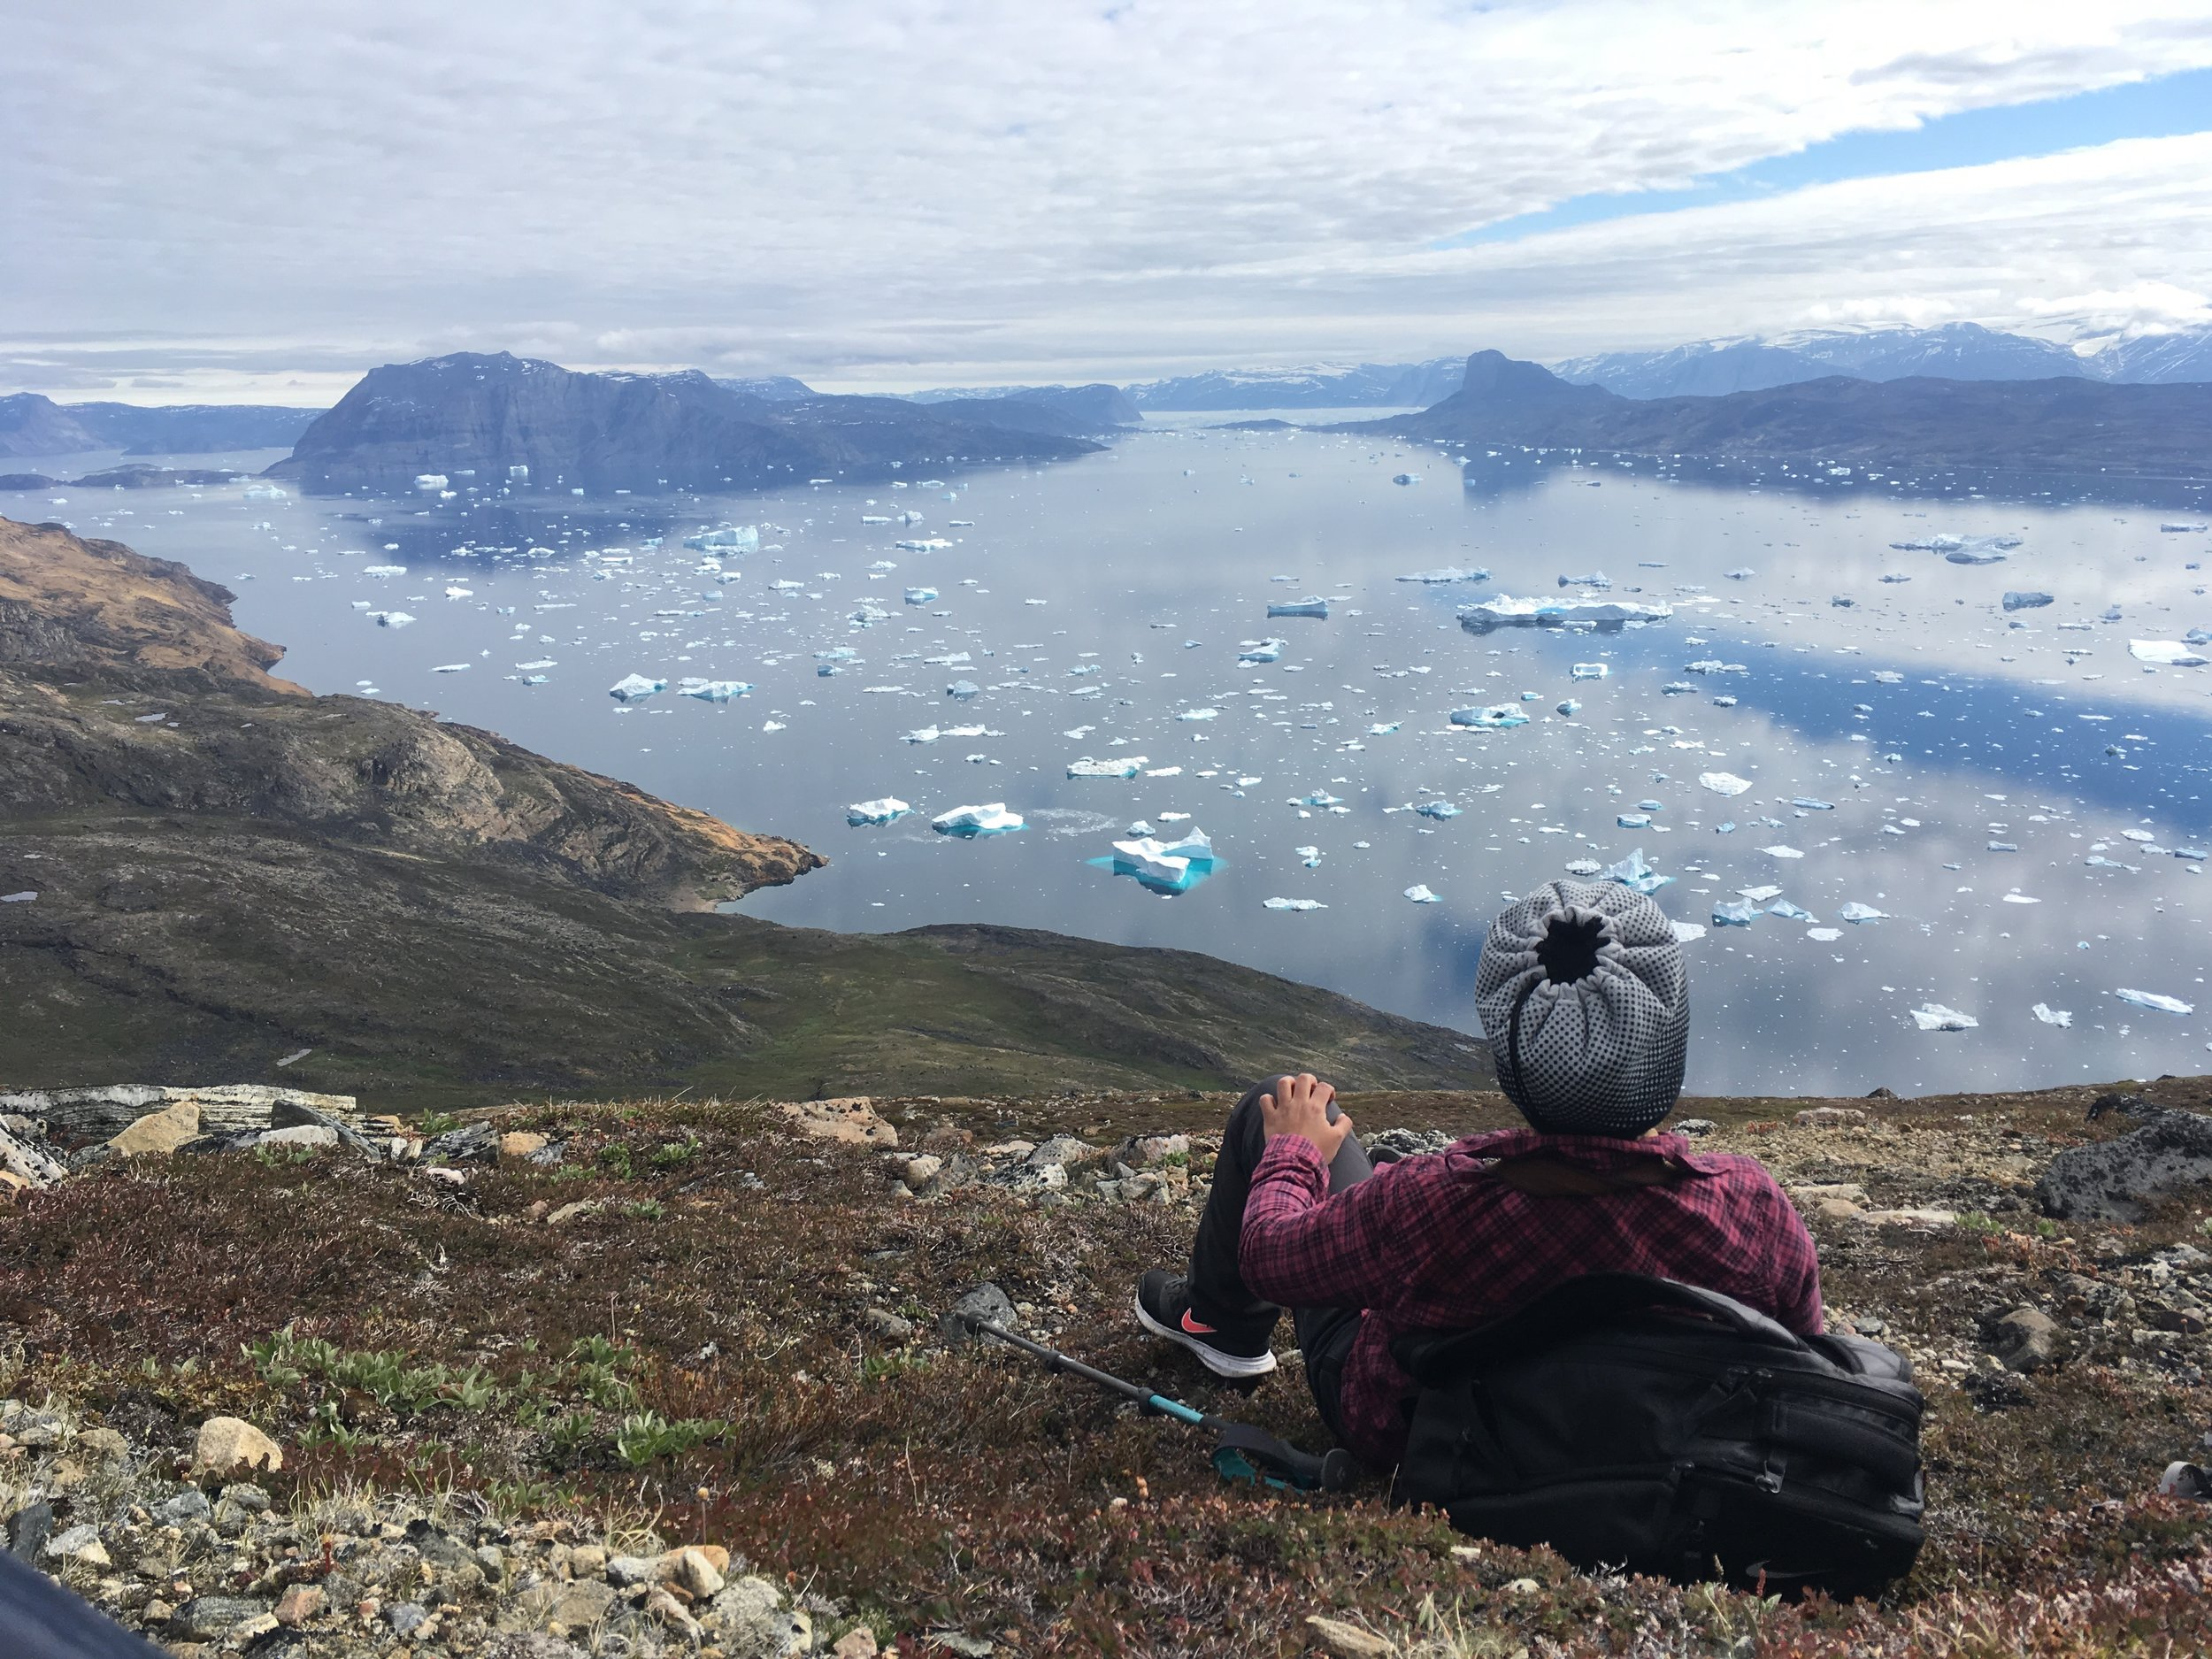 THE WANDERING CINDERELLA IN GREENLAND - BLOG REPORT BY CINDY MOLINA AUGUST 2017